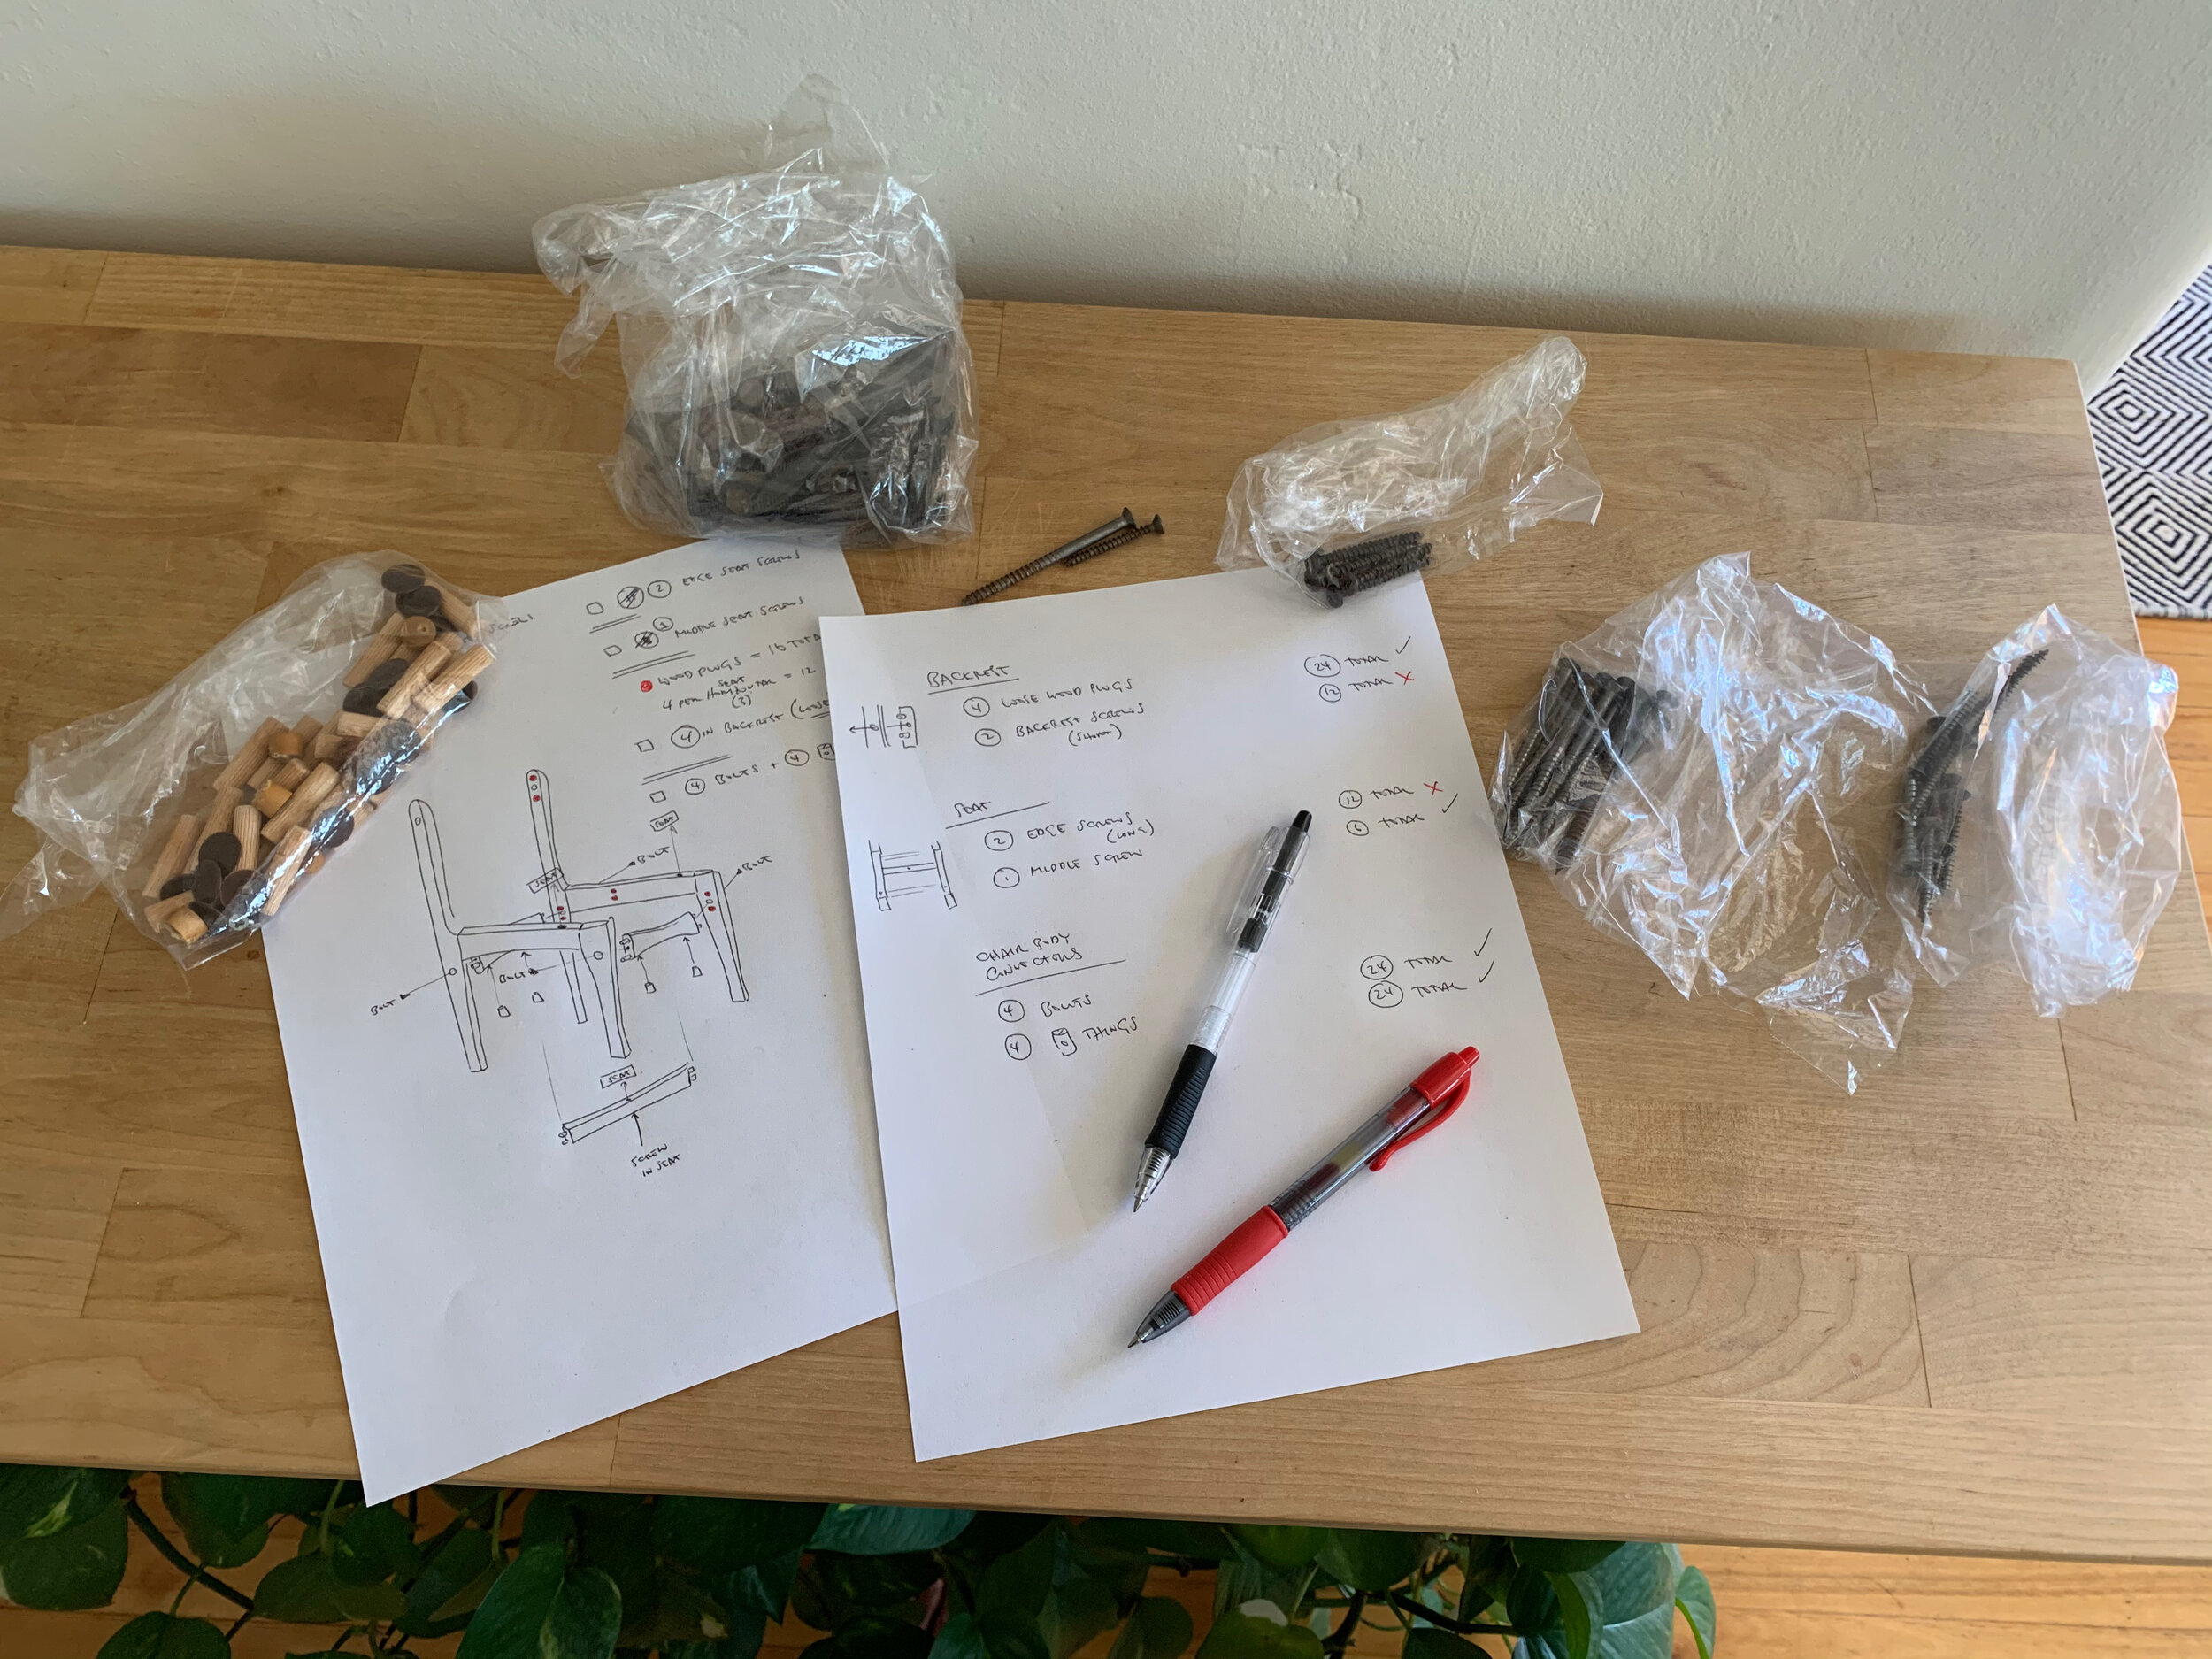 Photo showing screws in plastic bags and a sketch of the chair construction